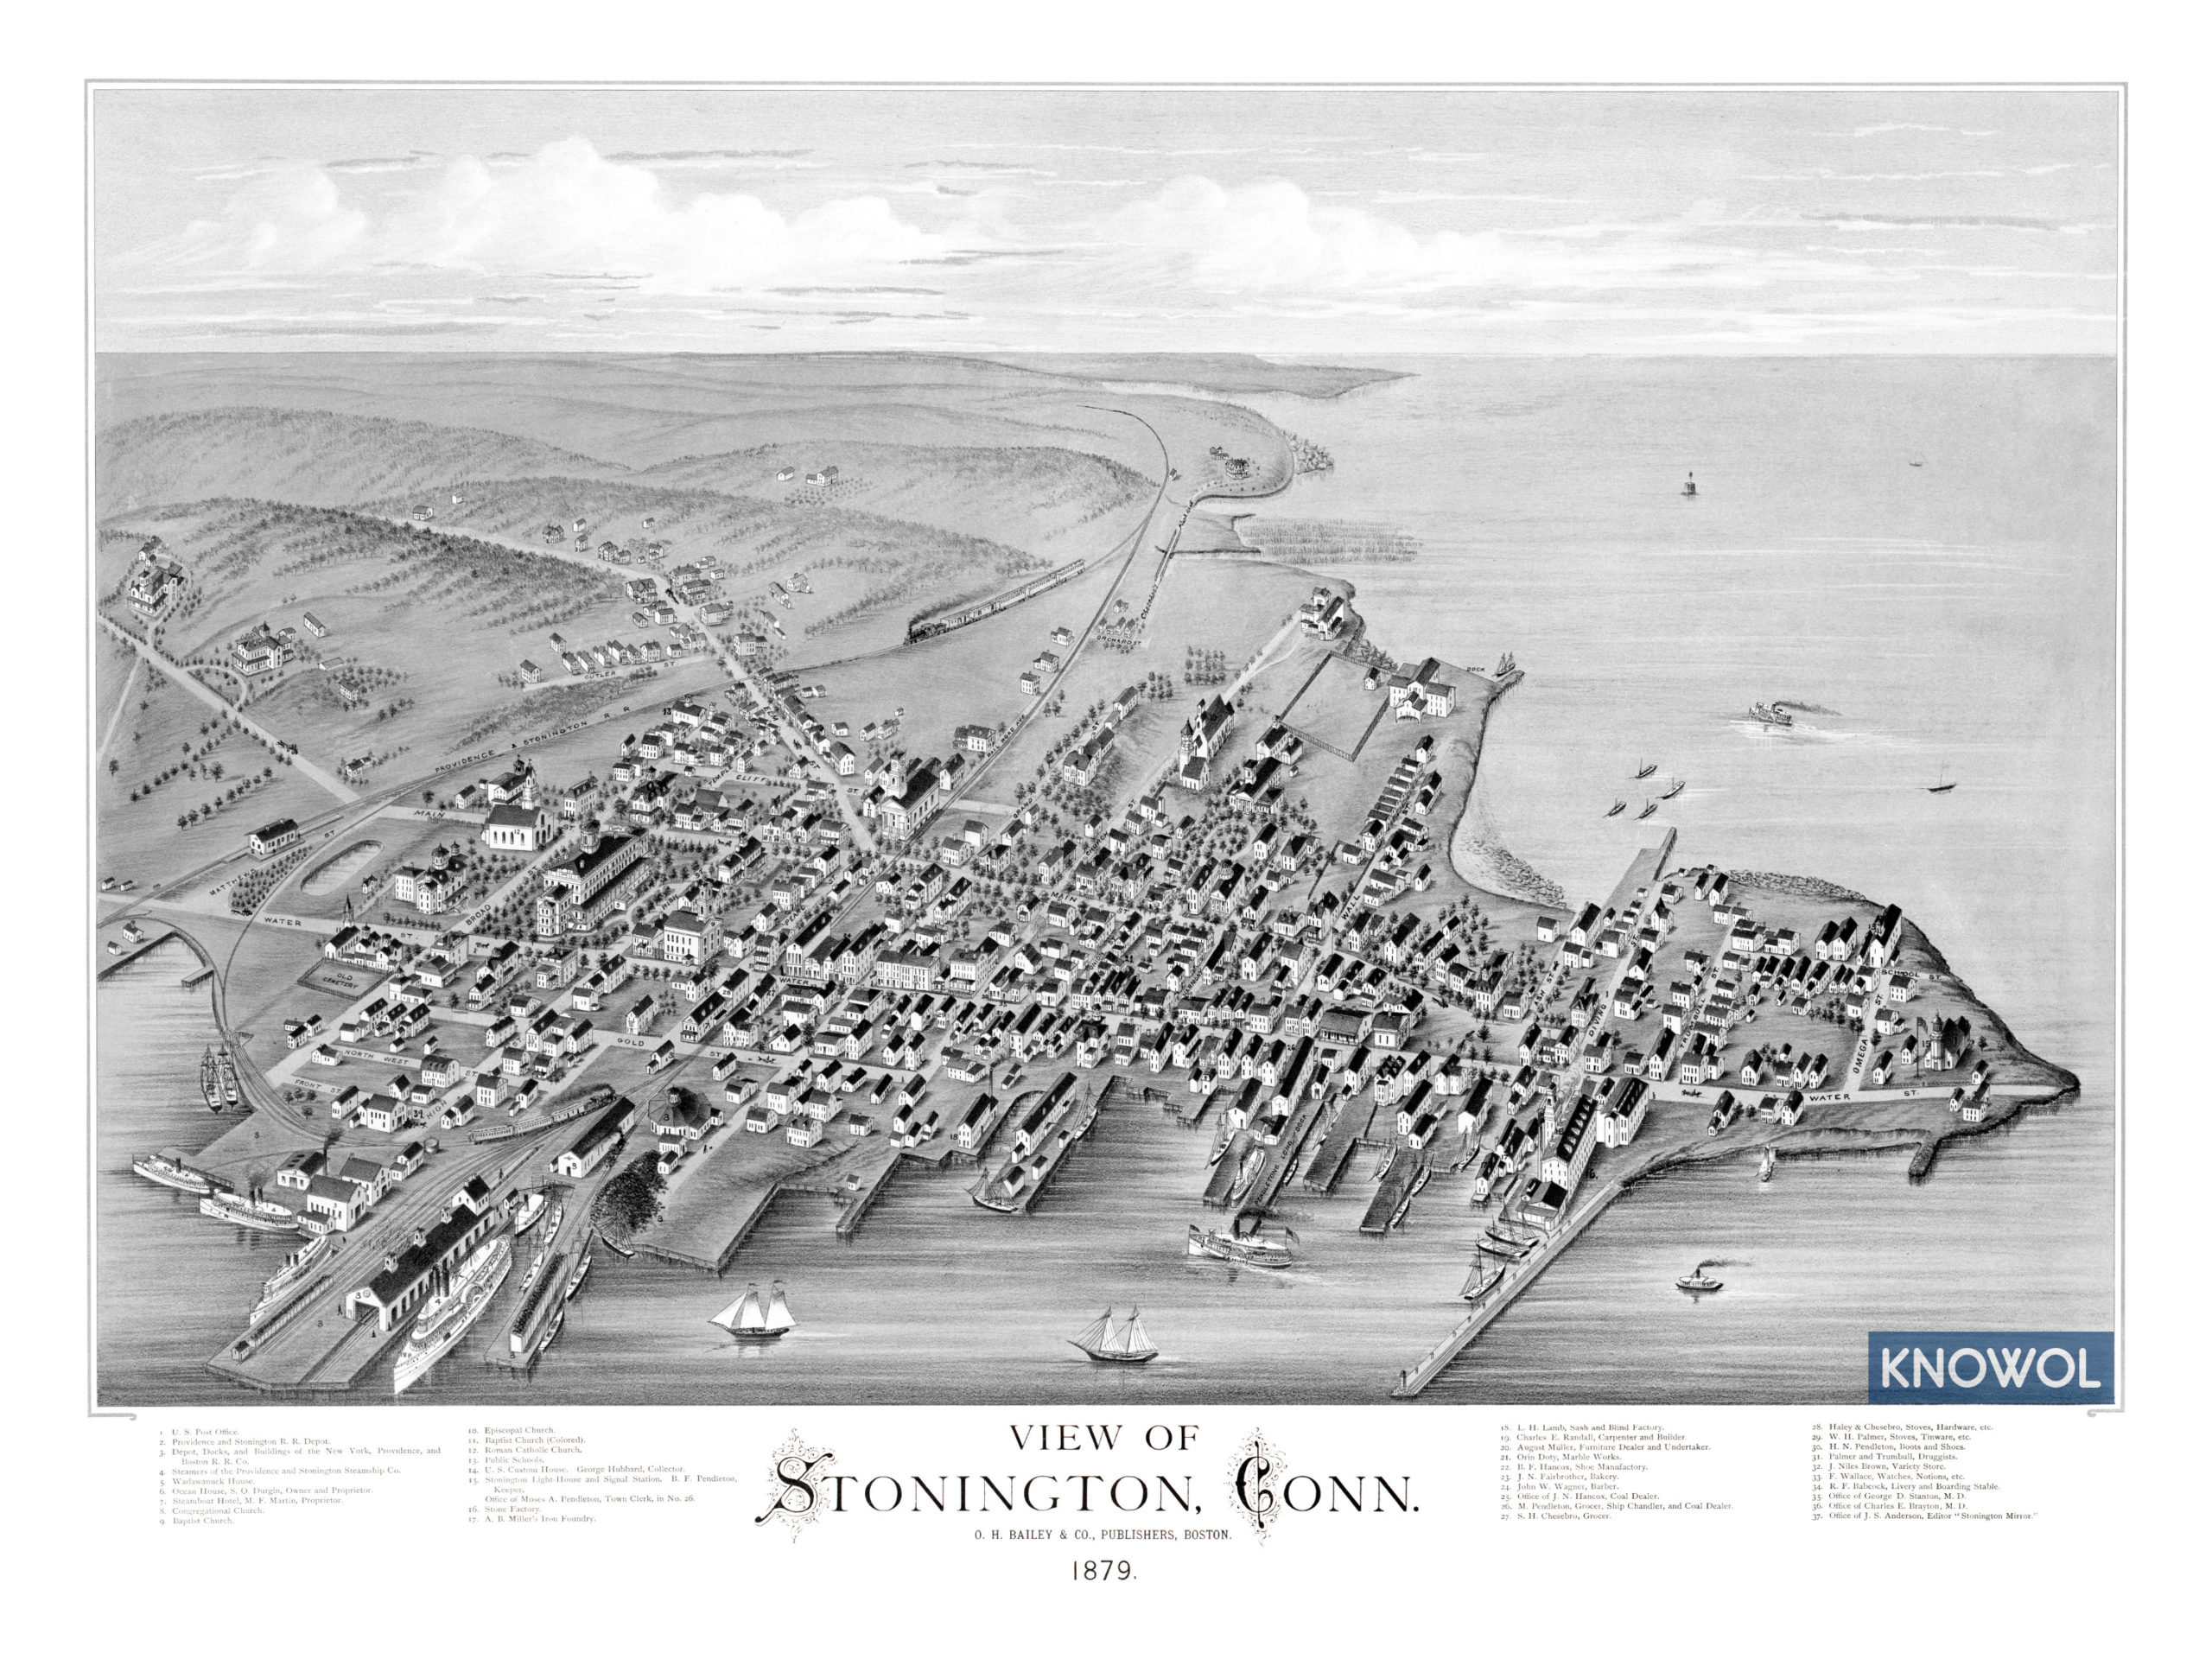 Amazing old map of Stonington, Connecticut in 1879